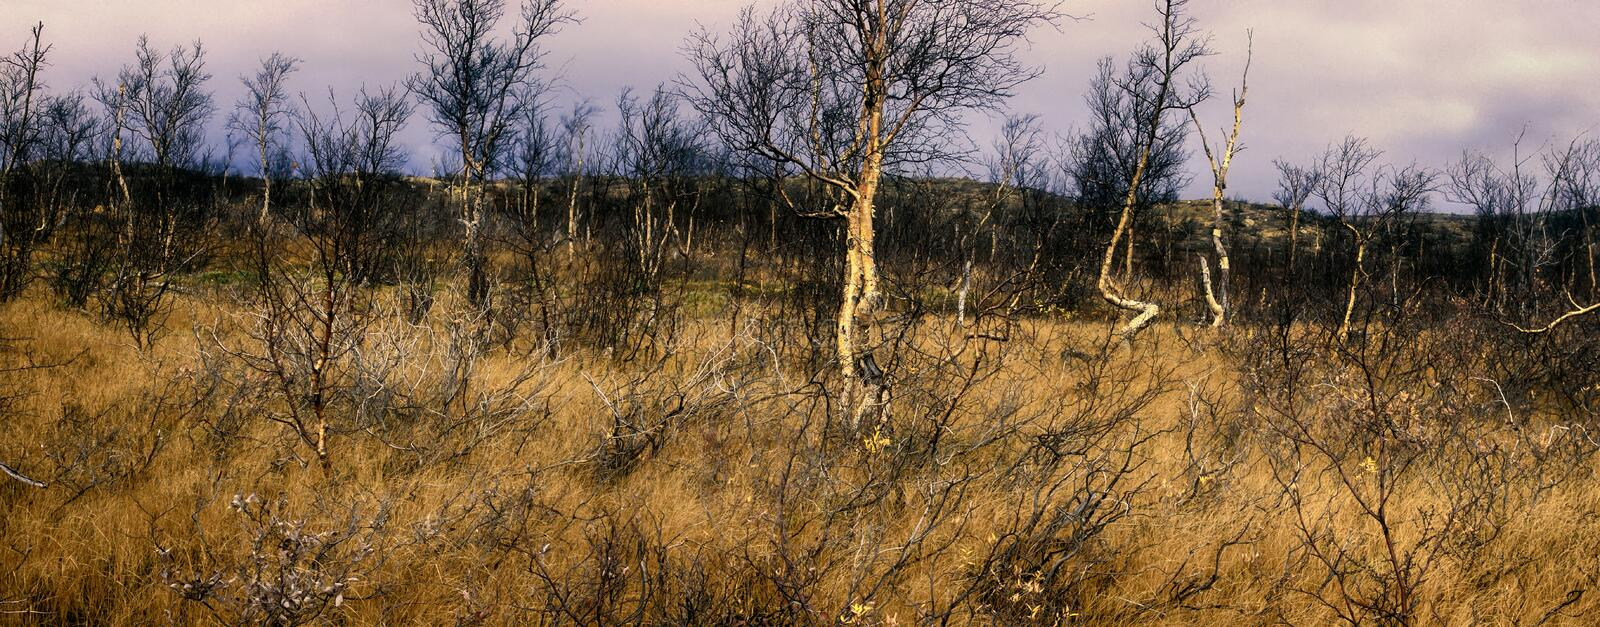 Forest-tundra in middle of autumn - Crooked birch stock images